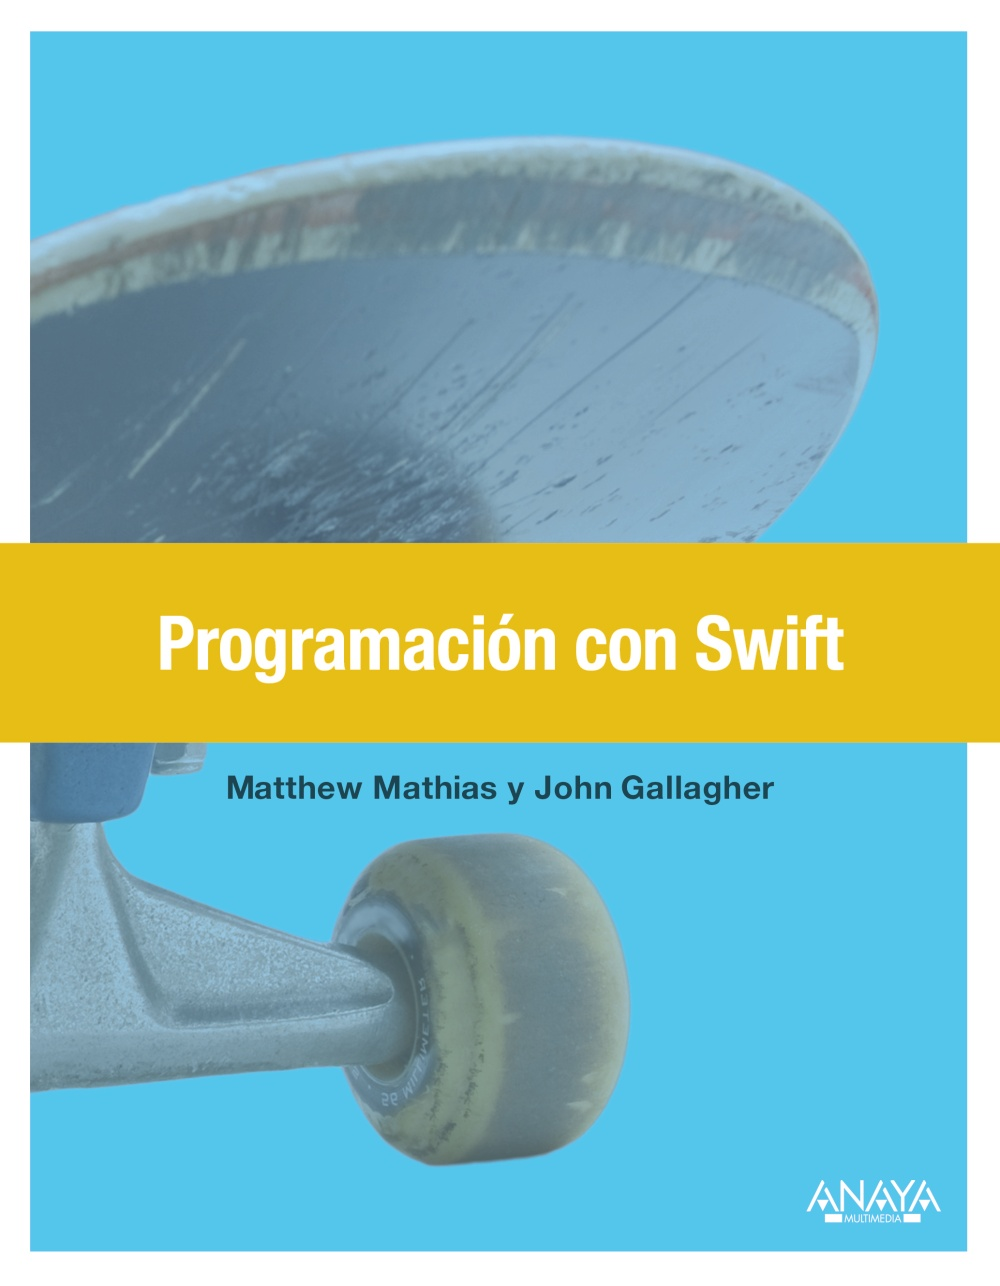 Programación con swift